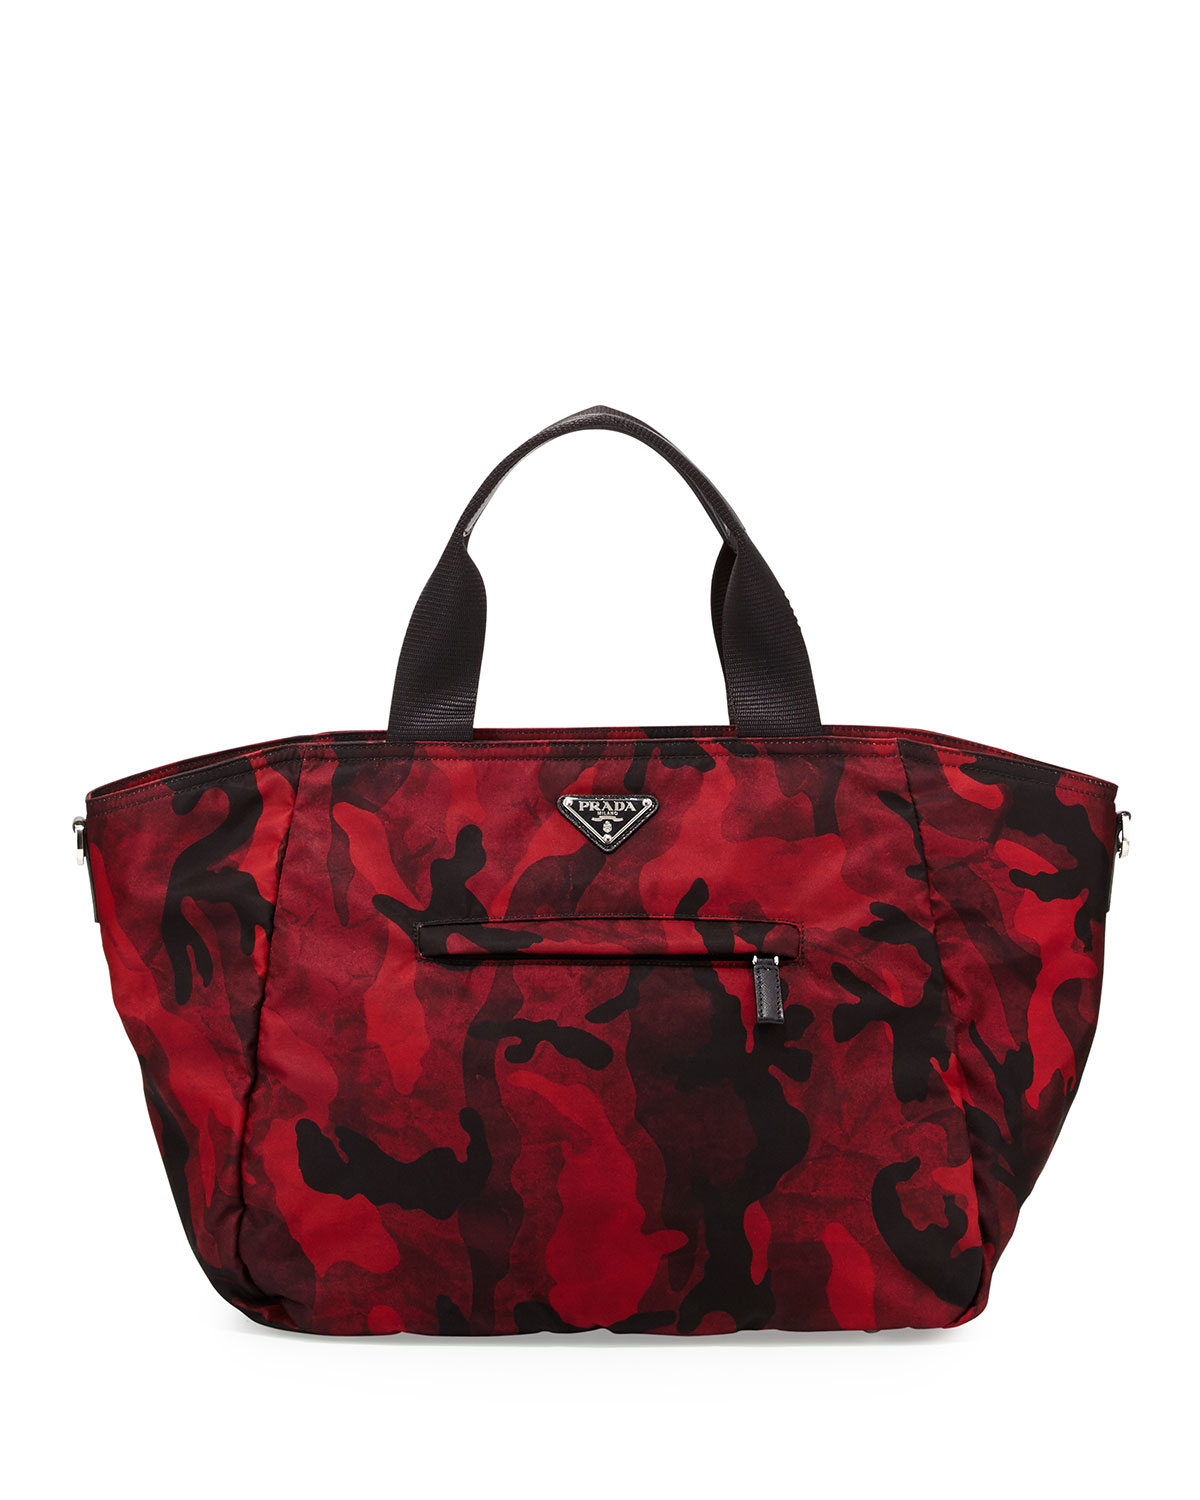 2822cad1e7708b low cost lyst prada tessuto camouflage tote bag in red d79a1 06192